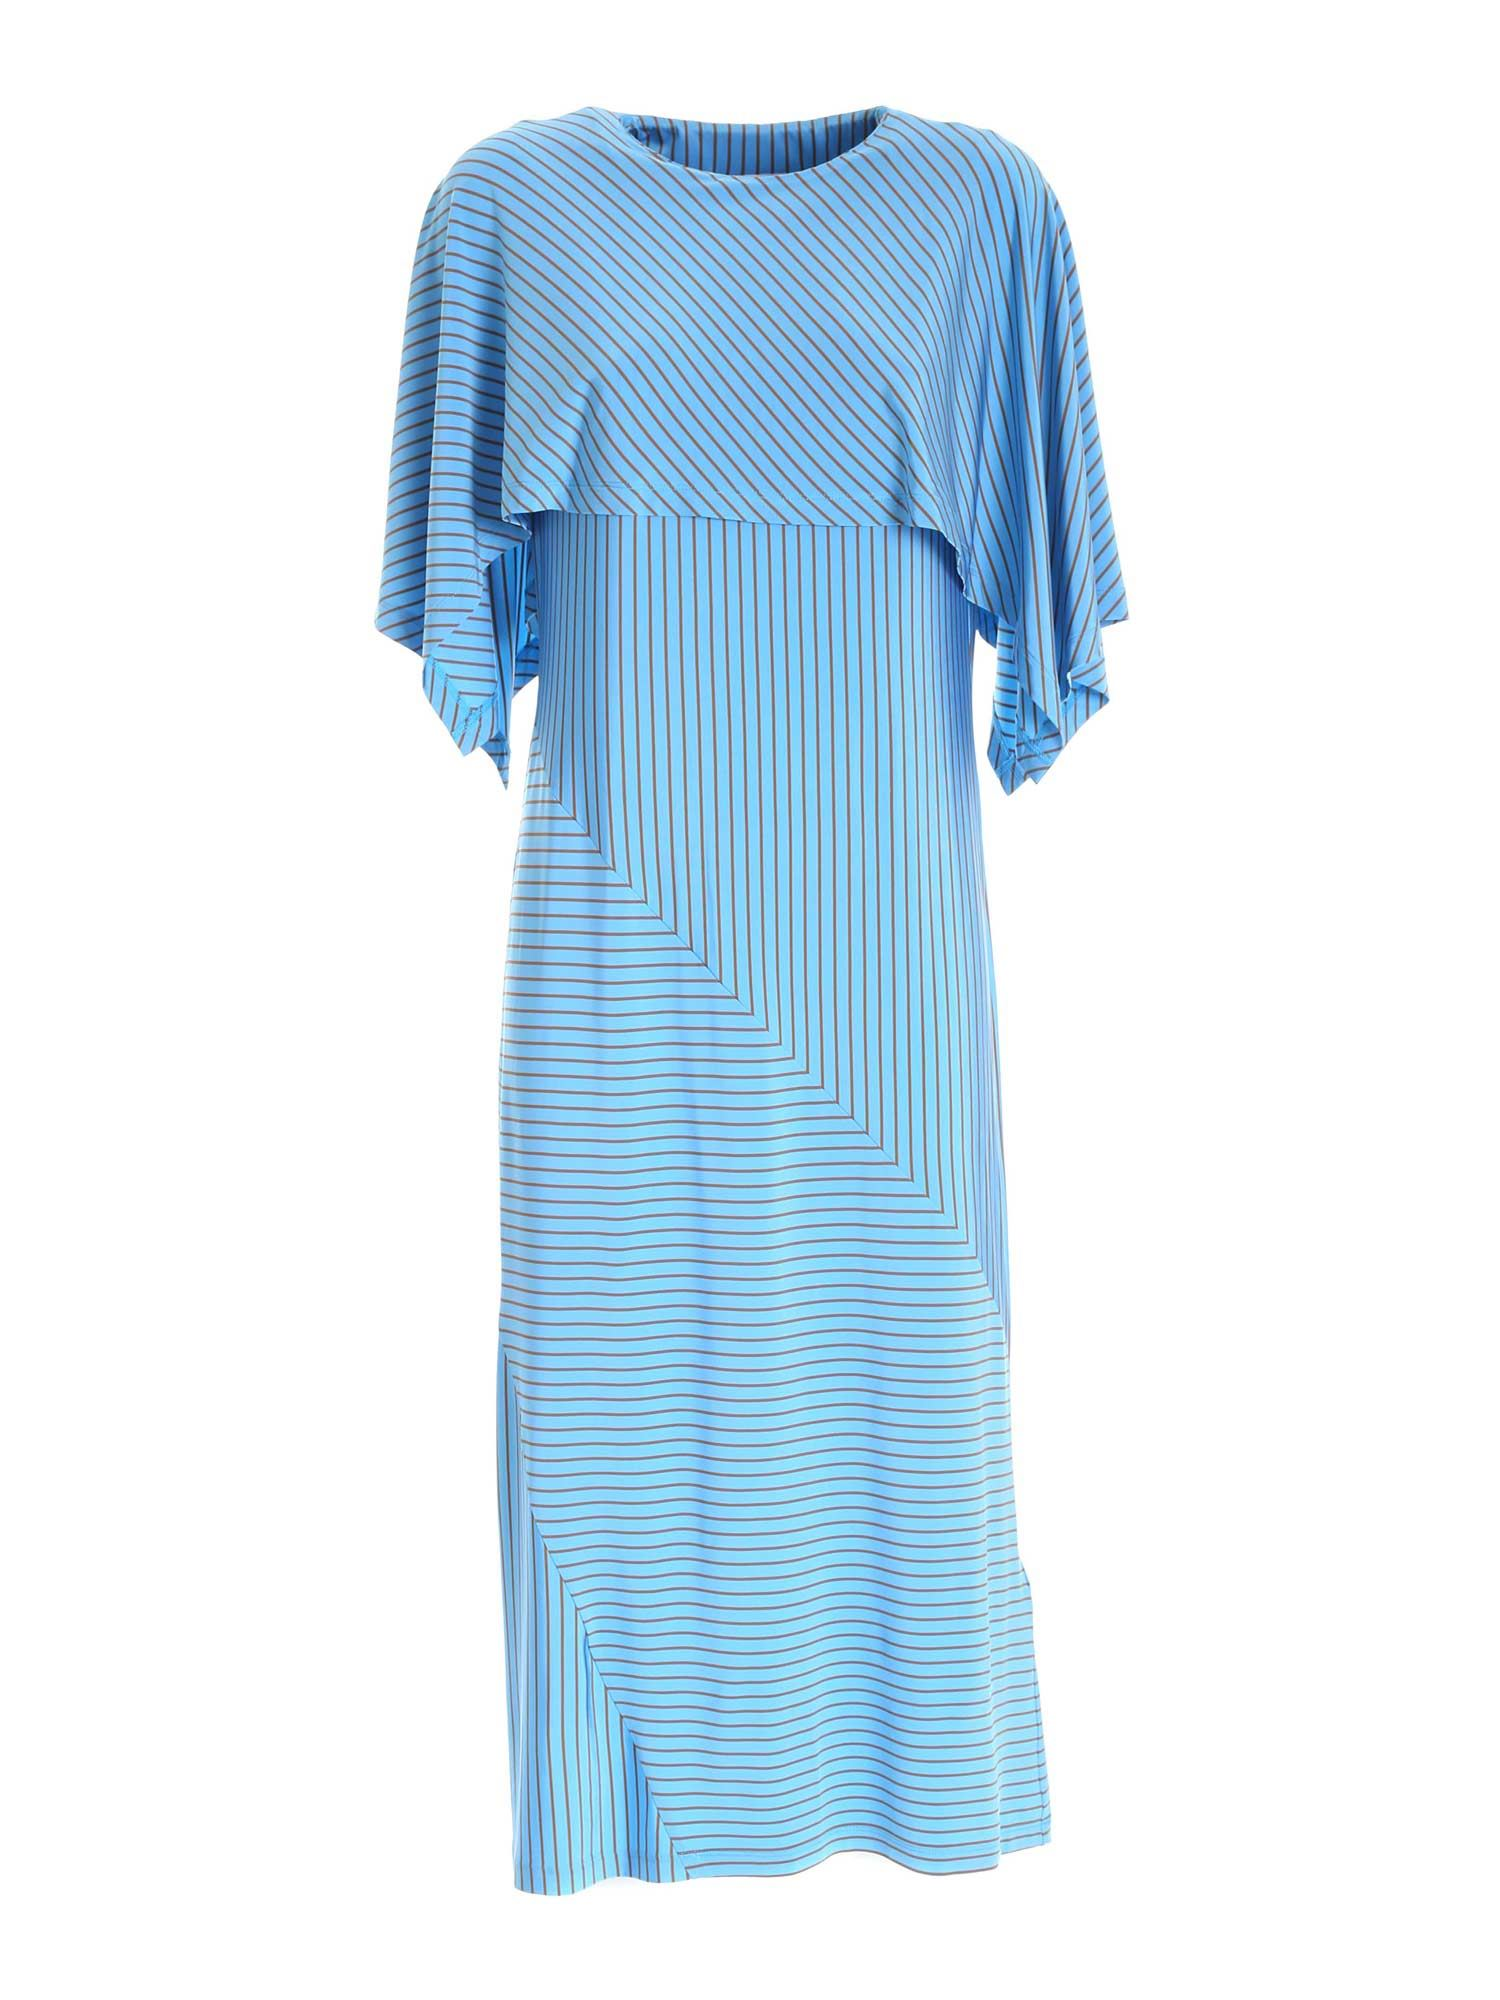 Mm6 Maison Margiela LONG DRESS WITH STRIPED PATTERN IN LIGHT BLUE